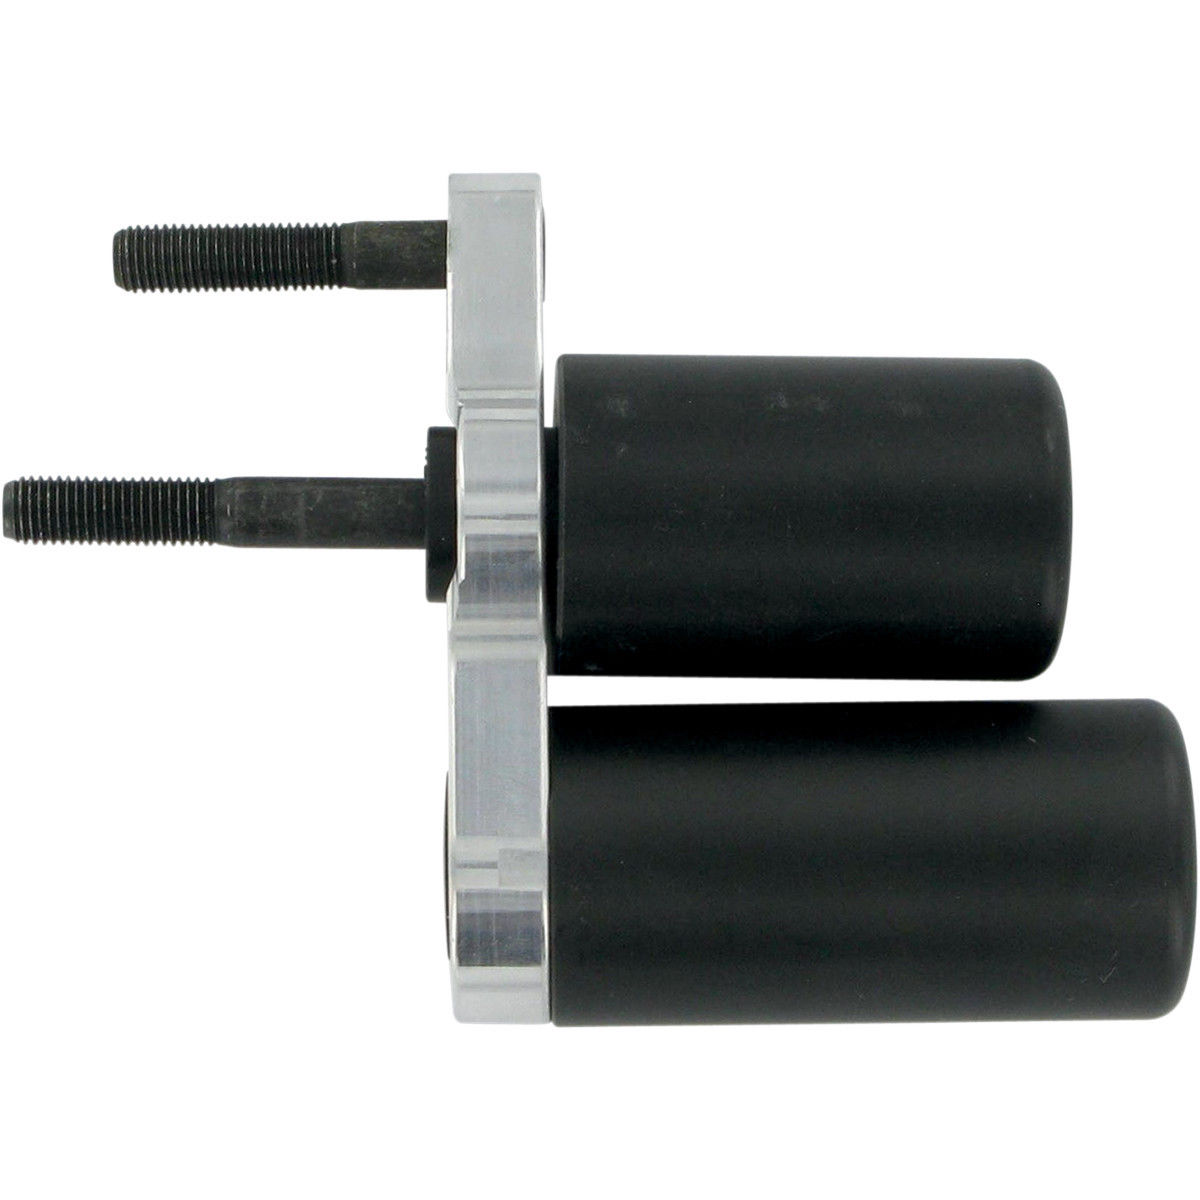 Frame Sliders FP-180